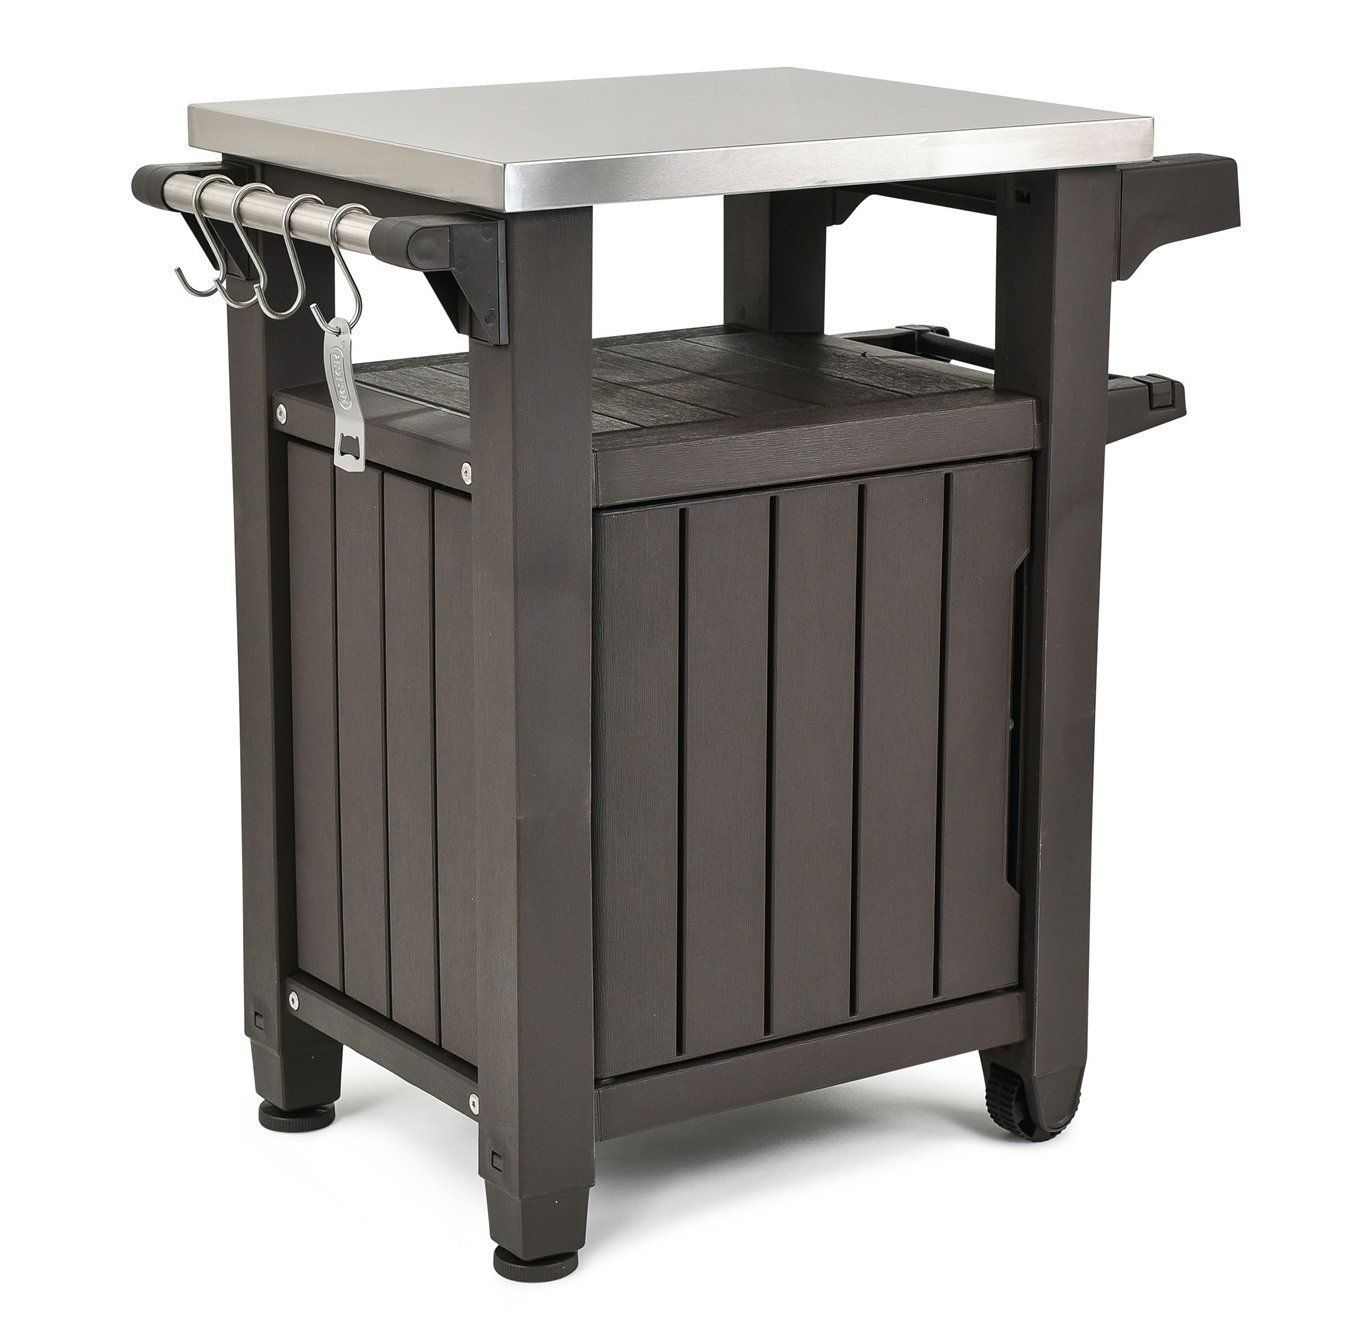 AmazonSmile : Keter Unity Indoor Outdoor BBQ Entertainment Storage  Table/Prep Station With Metal Top